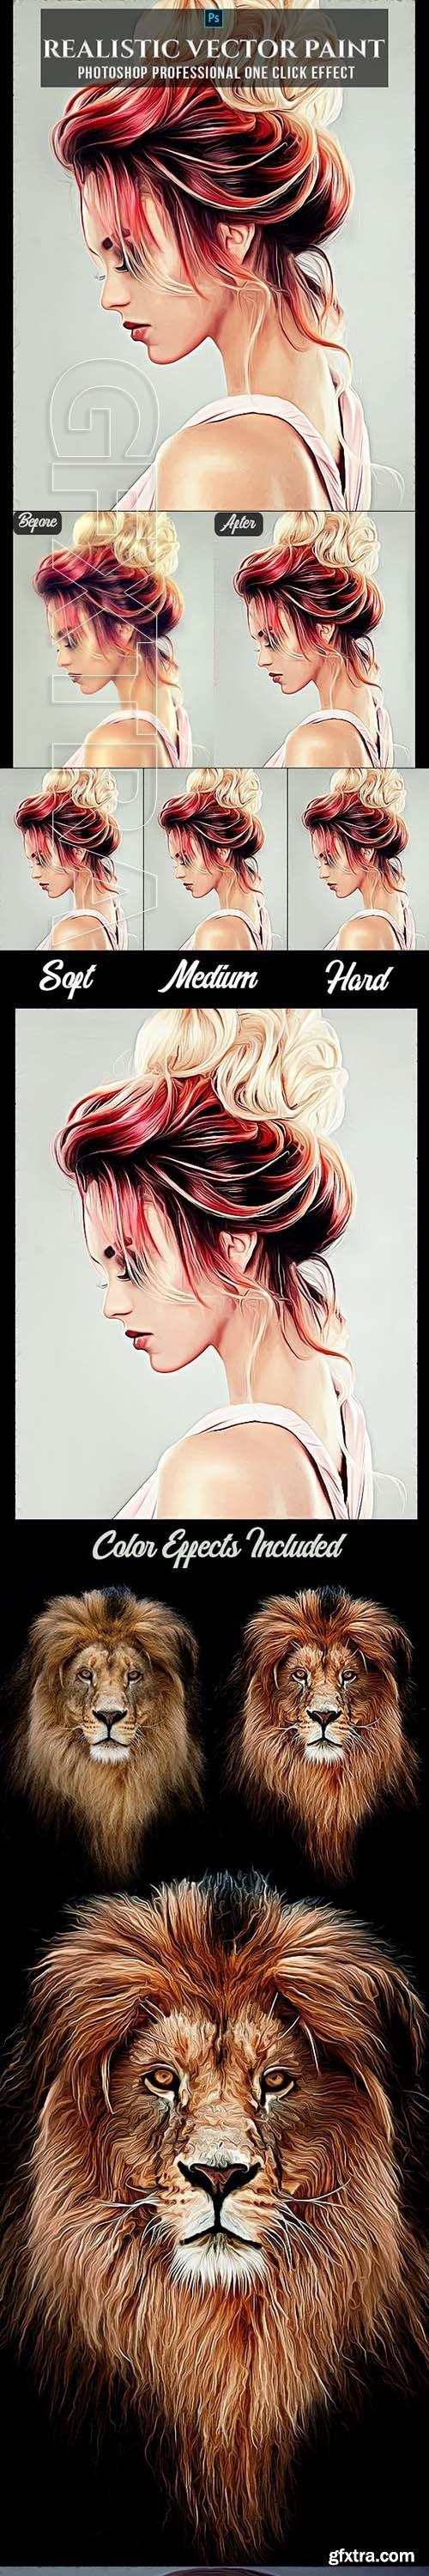 GraphicRiver - Realistic Vector Painting Photoshop Action 24510257